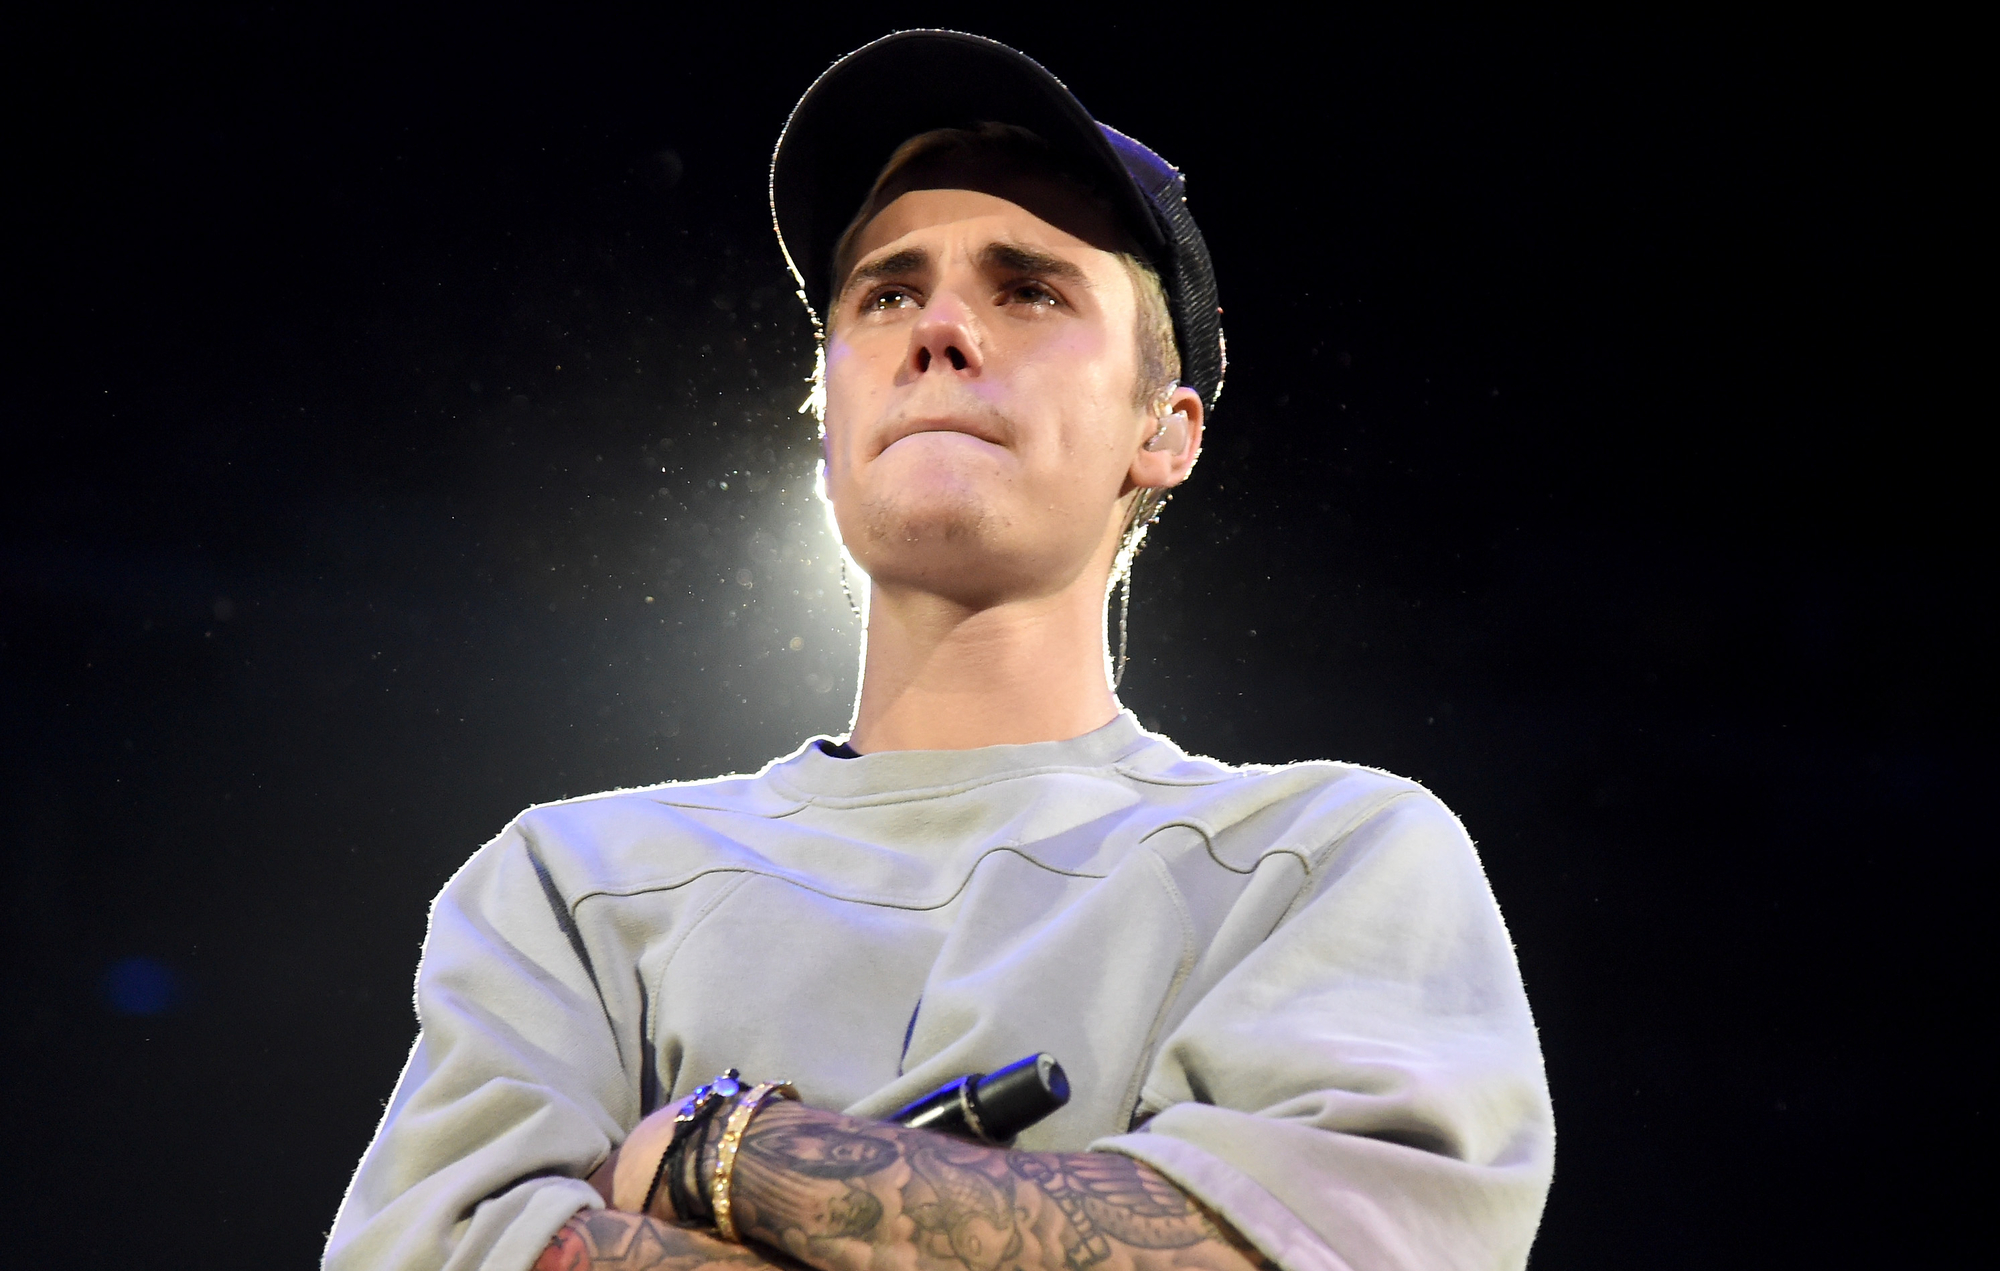 Justin Bieber plans to drop a new album before 2020